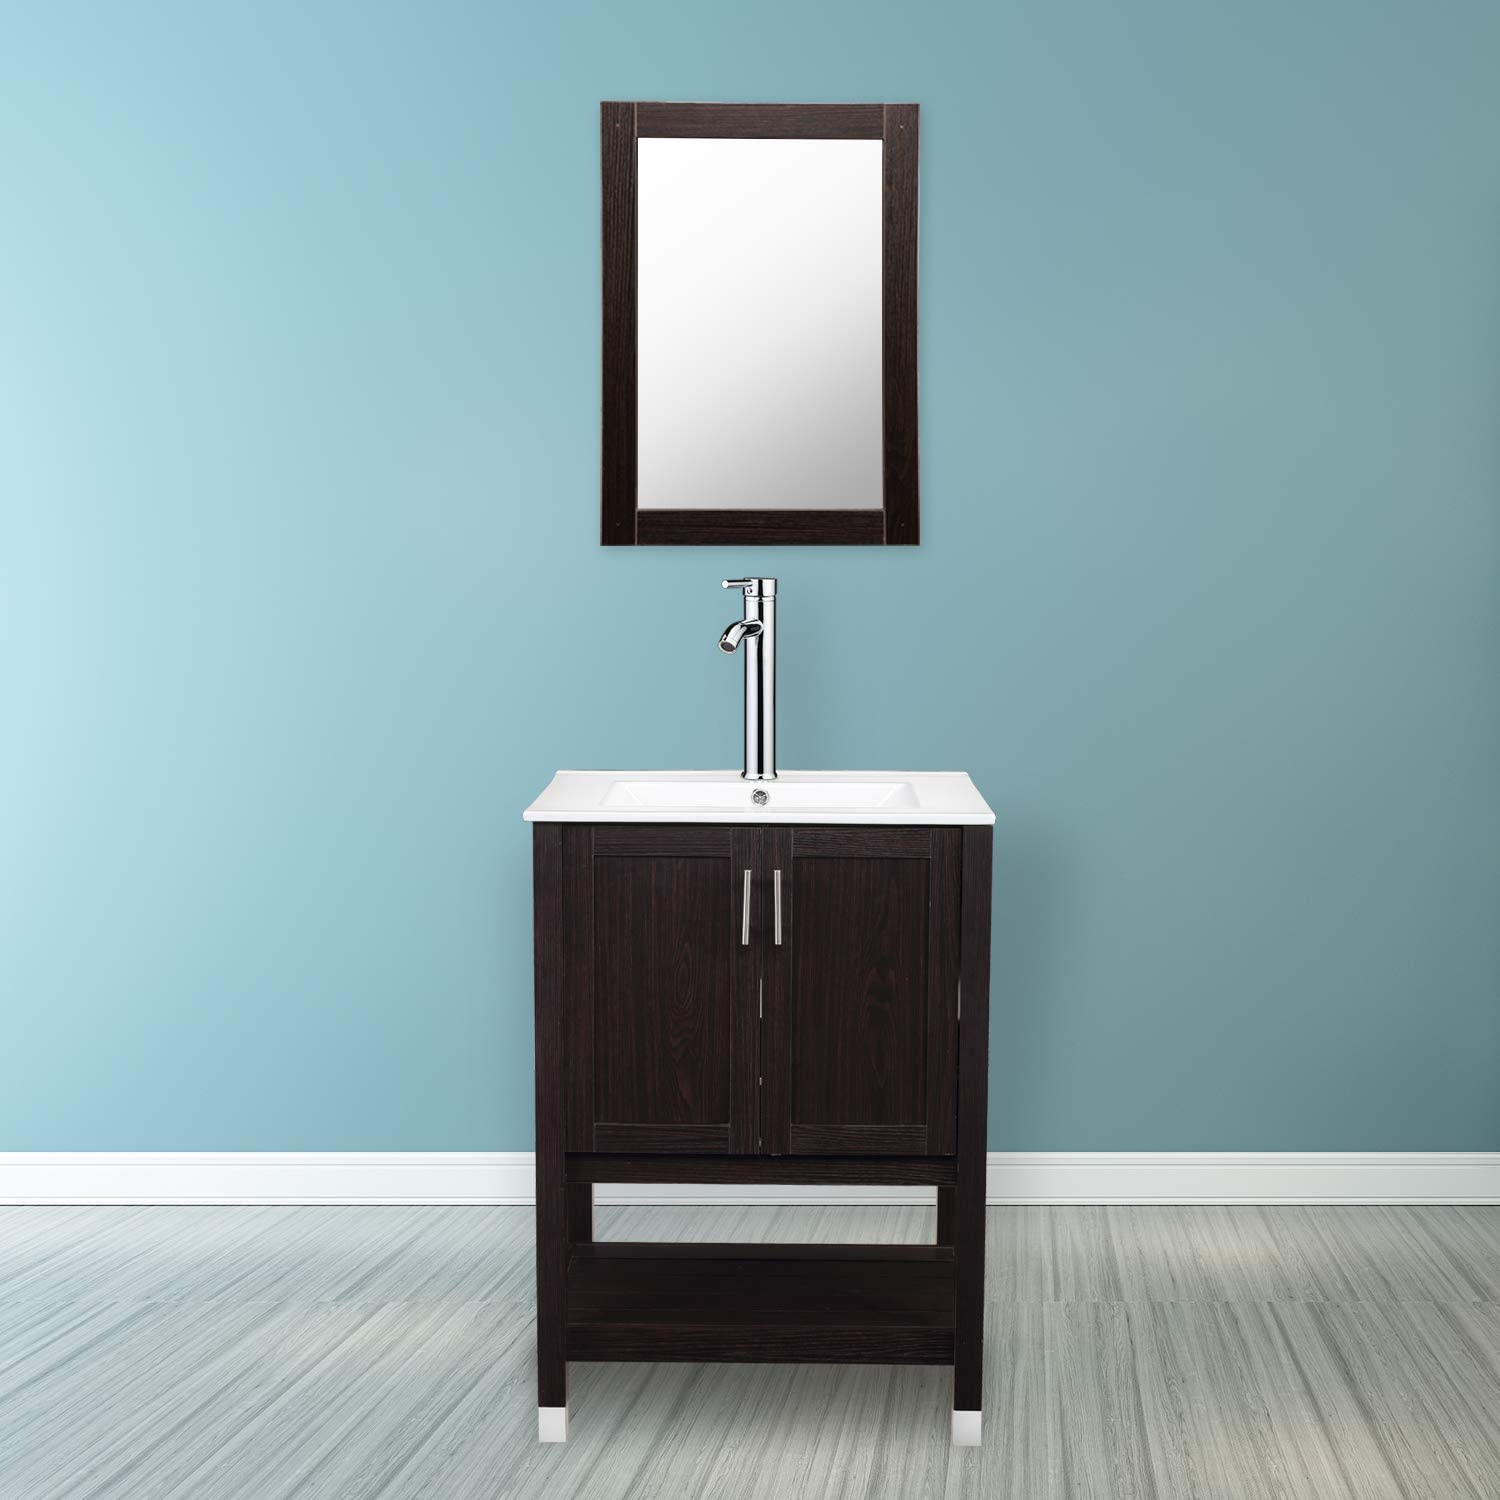 DOIT 24 inch Modern Bathroom Vanity and Sink Combo Stand Cabinet,Wood Bathroom Sink Vanity Set with Drawers,White Ceramic Vessel Sink with Fauce Hole and Pop Up Drain,with Mirror vanity with big sink